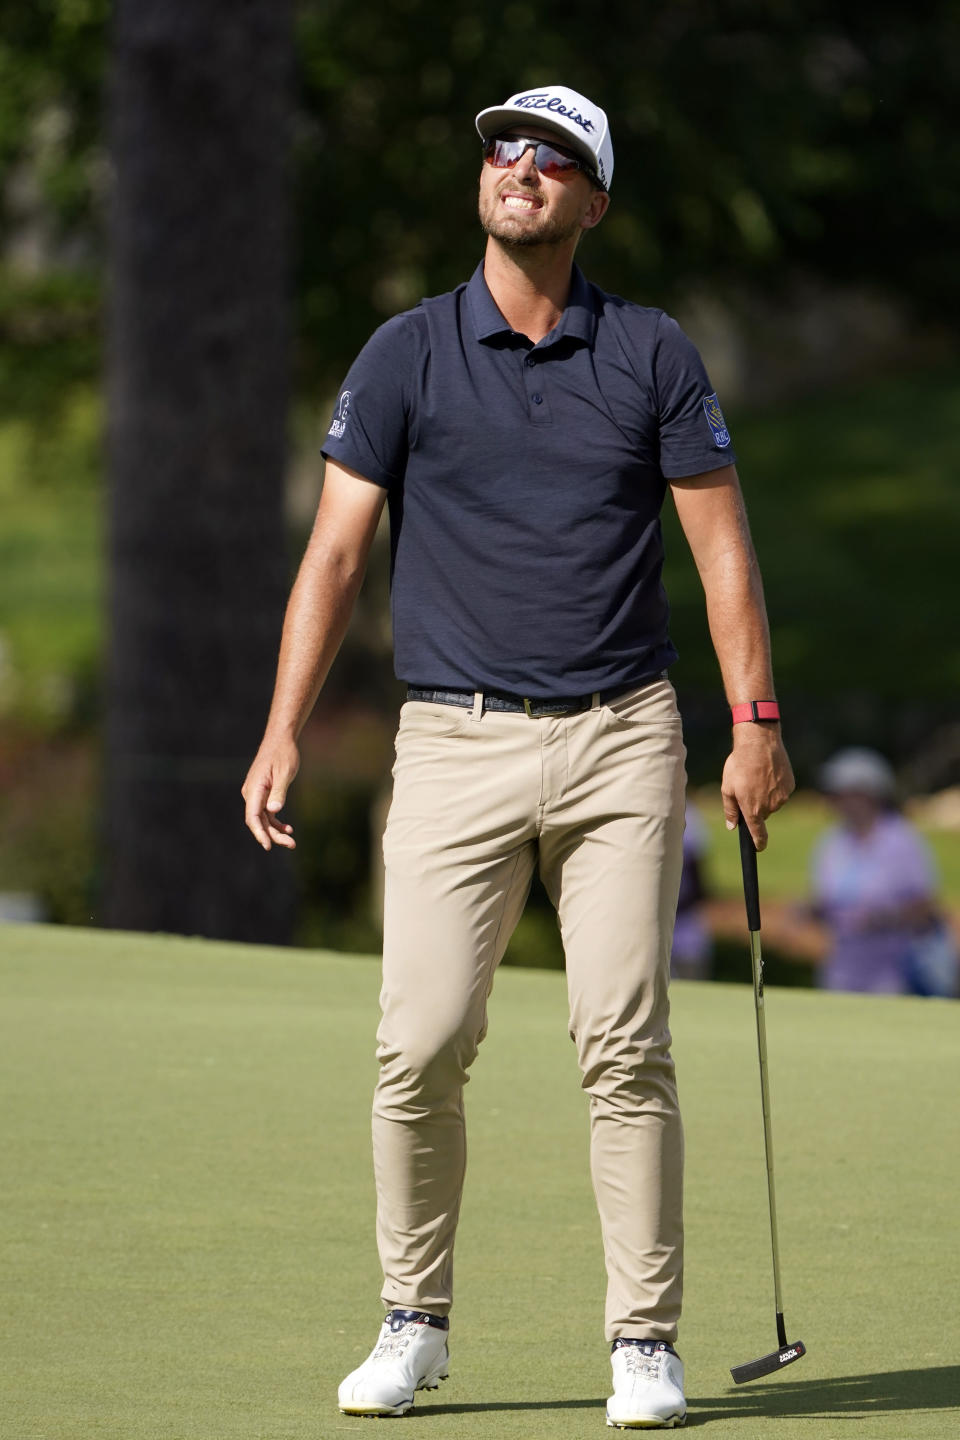 Roger Sloan, of Canada, reacts to his missed birdie putt attempt on the 18th green during the first round of the Wyndham Championship golf tournament at Sedgefield Country Club on Thursday, Aug. 13, 2020, in Greensboro, N.C. (AP Photo/Chris Carlson)